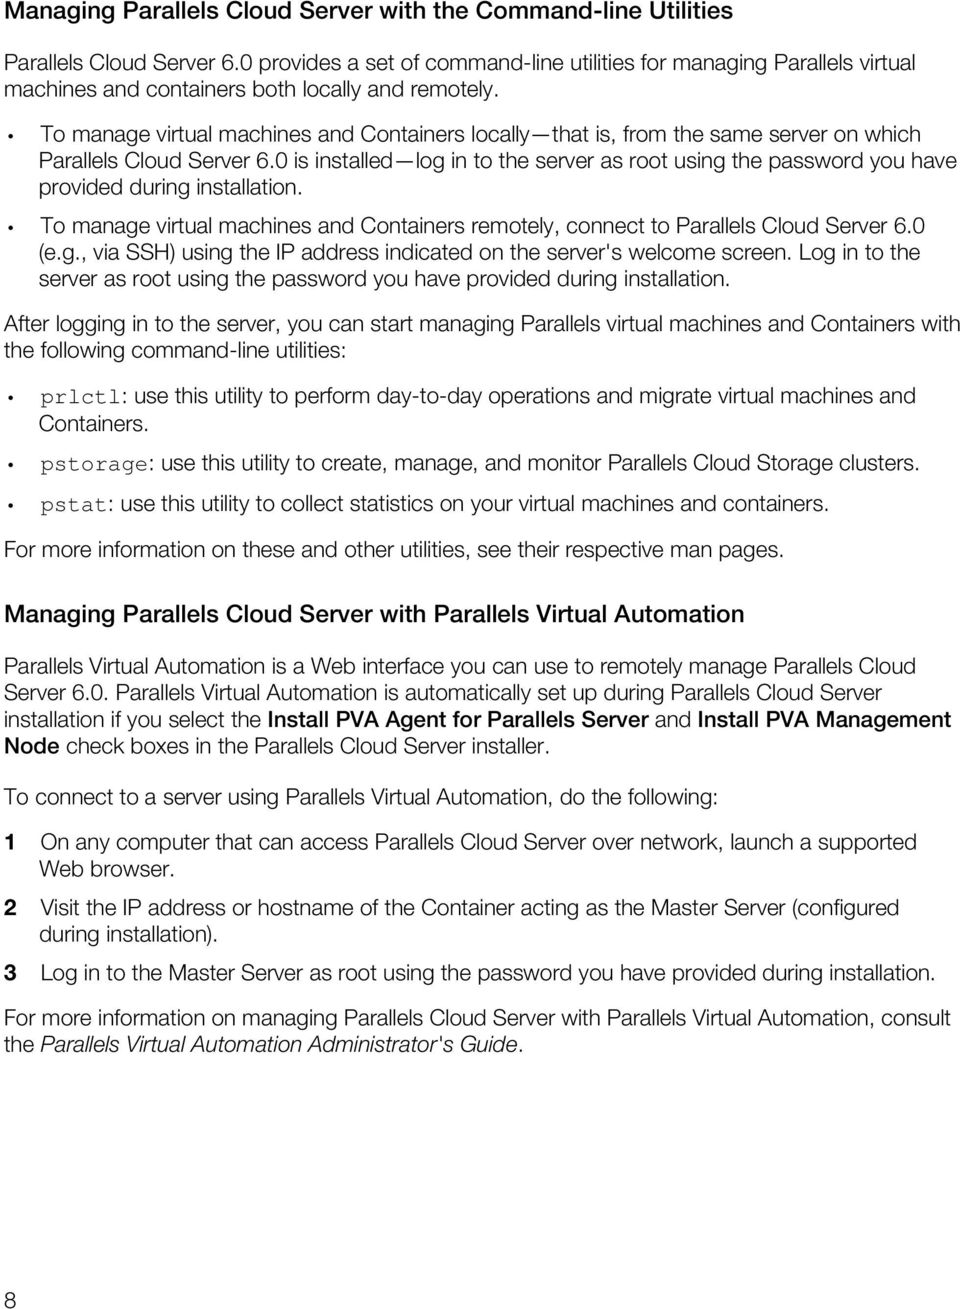 To manage virtual machines and Containers locally that is, from the same server on which Parallels Cloud Server 6.